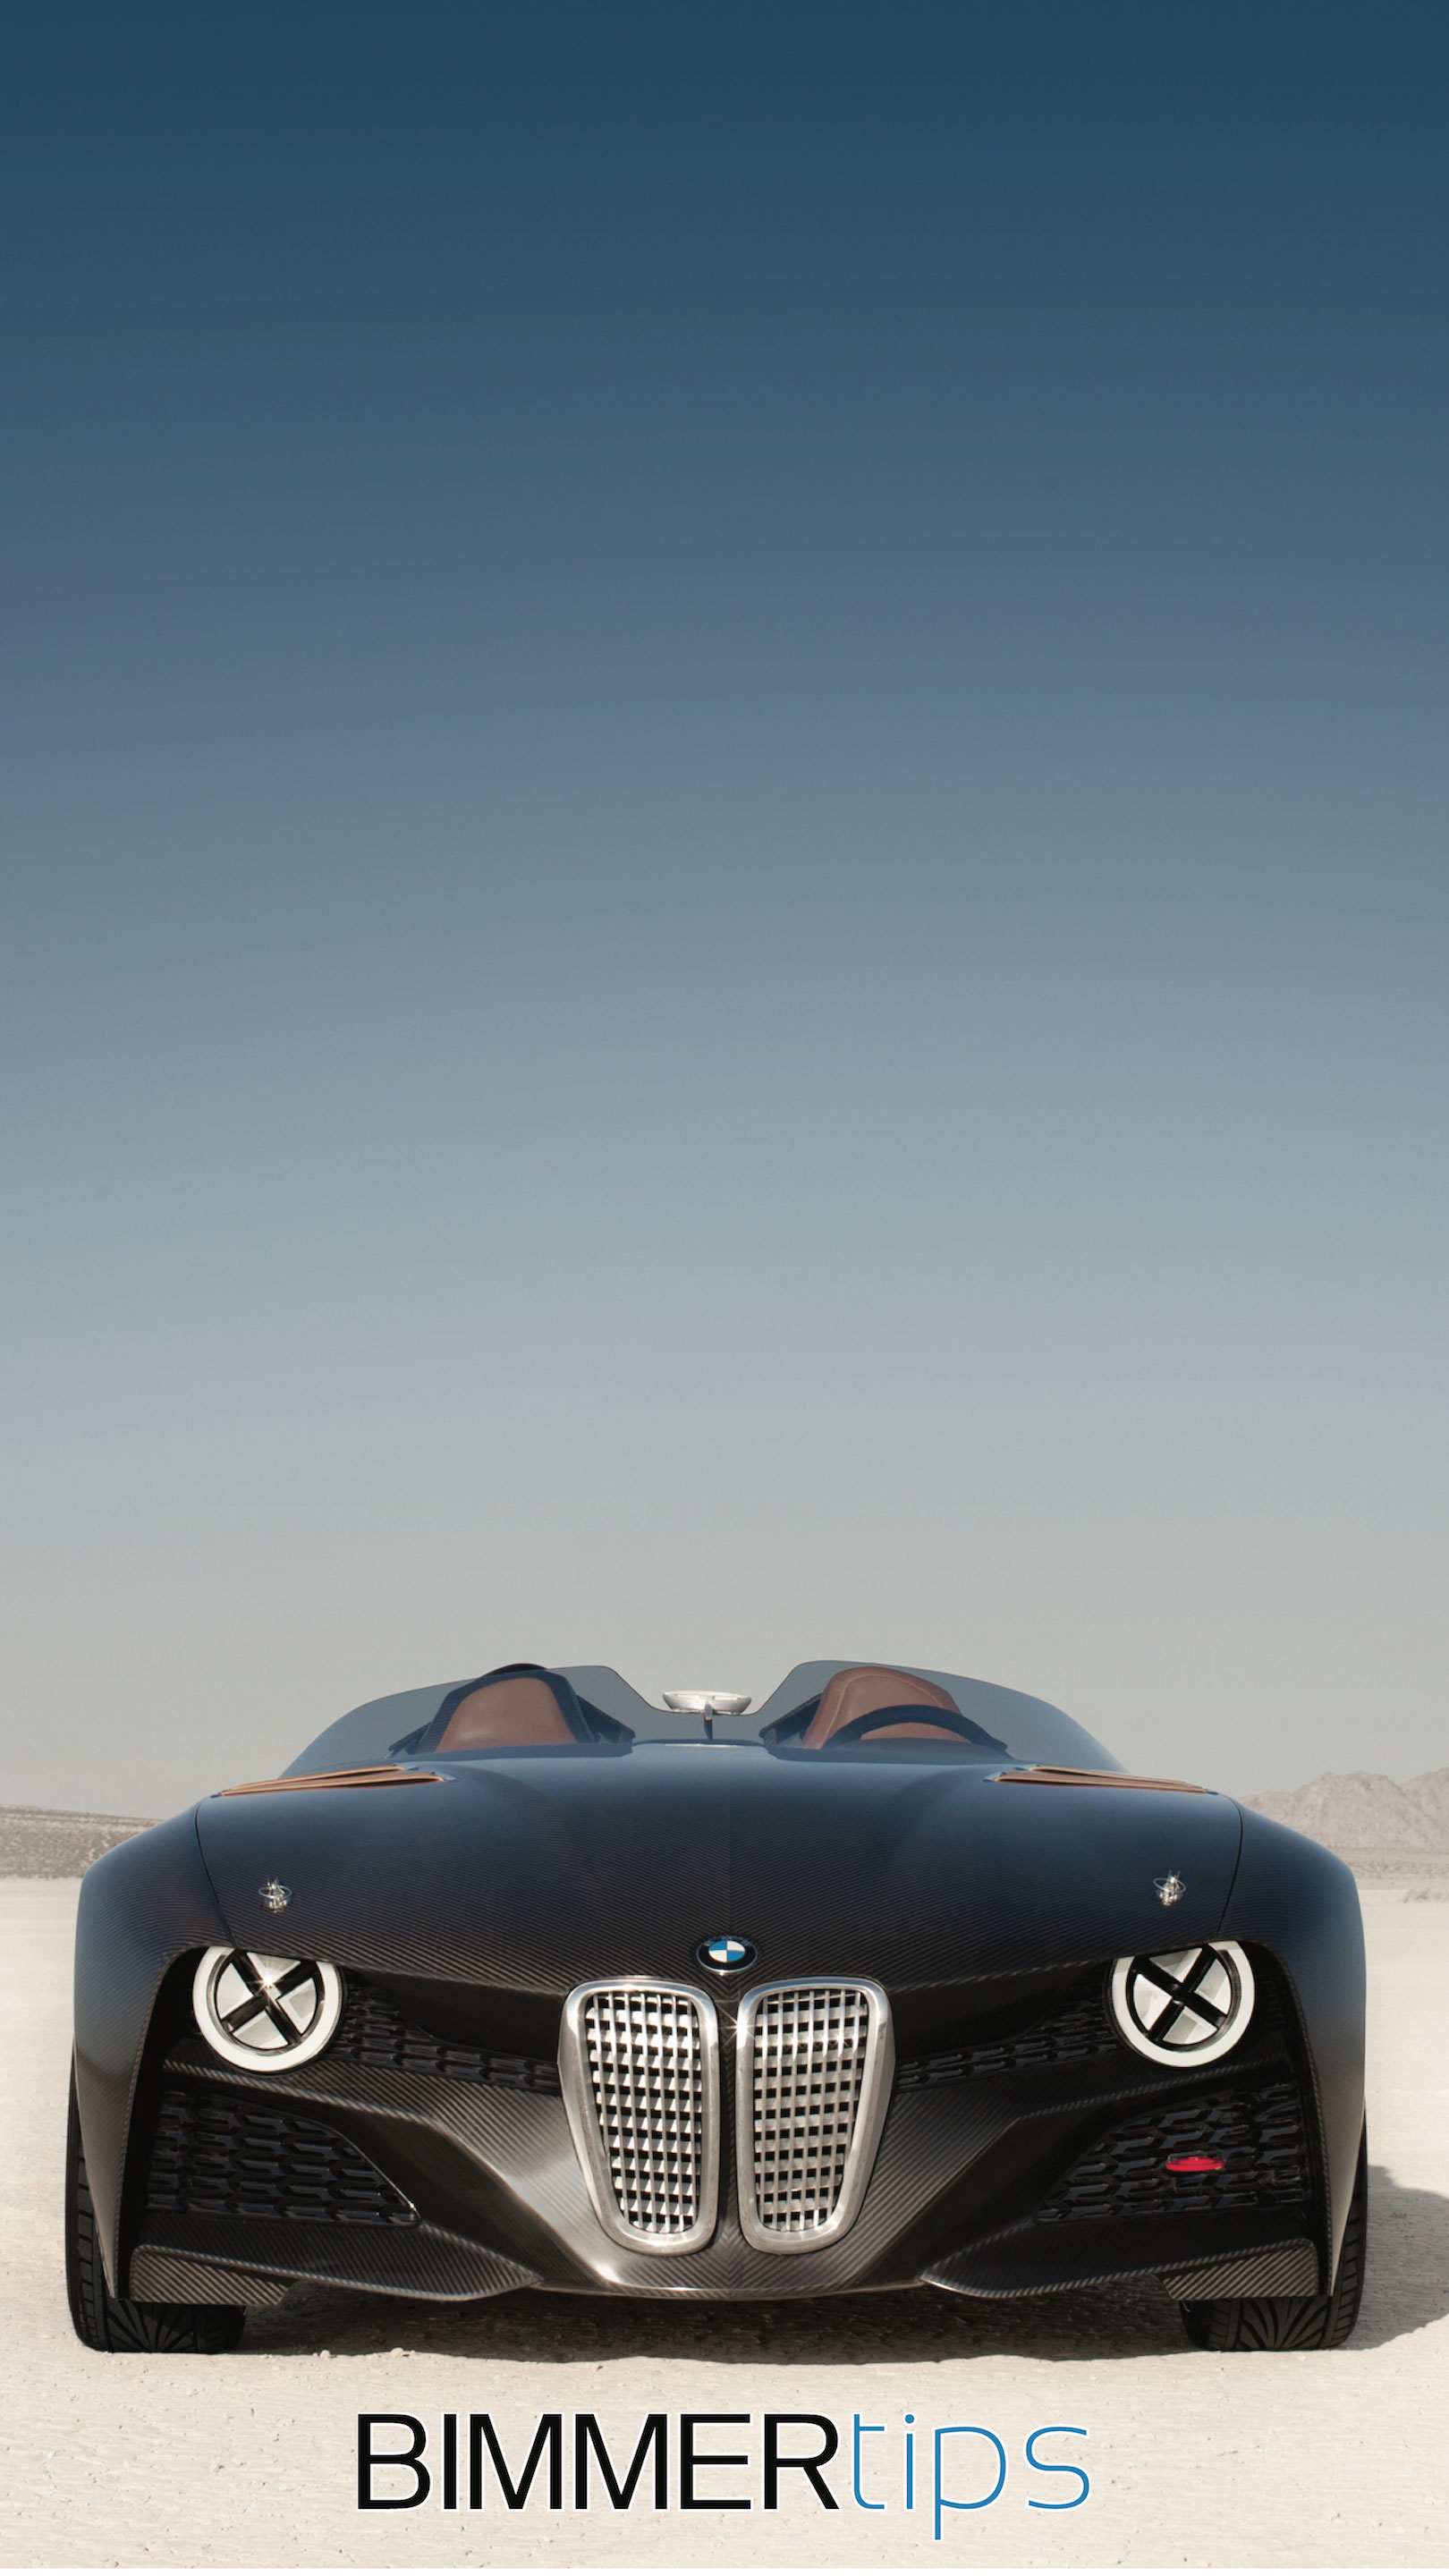 BMW 328 Homage iPhone android wallpaper